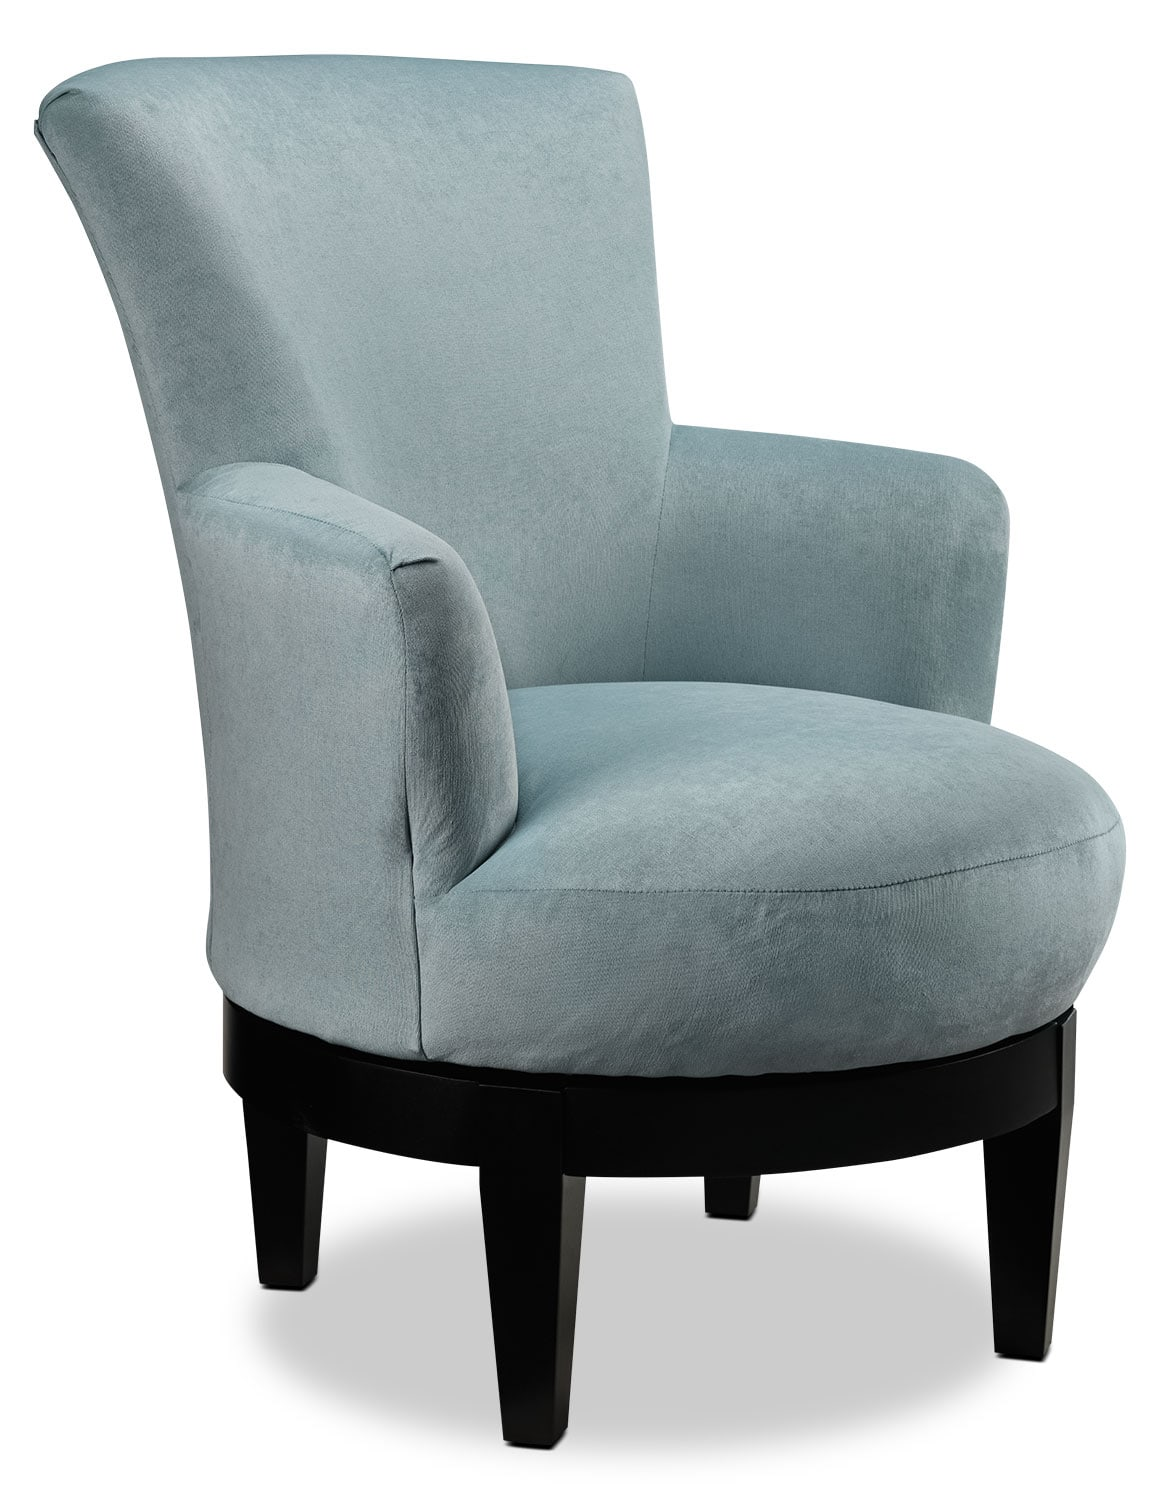 Living Room Furniture - Justine Accent Chair - Spa Blue